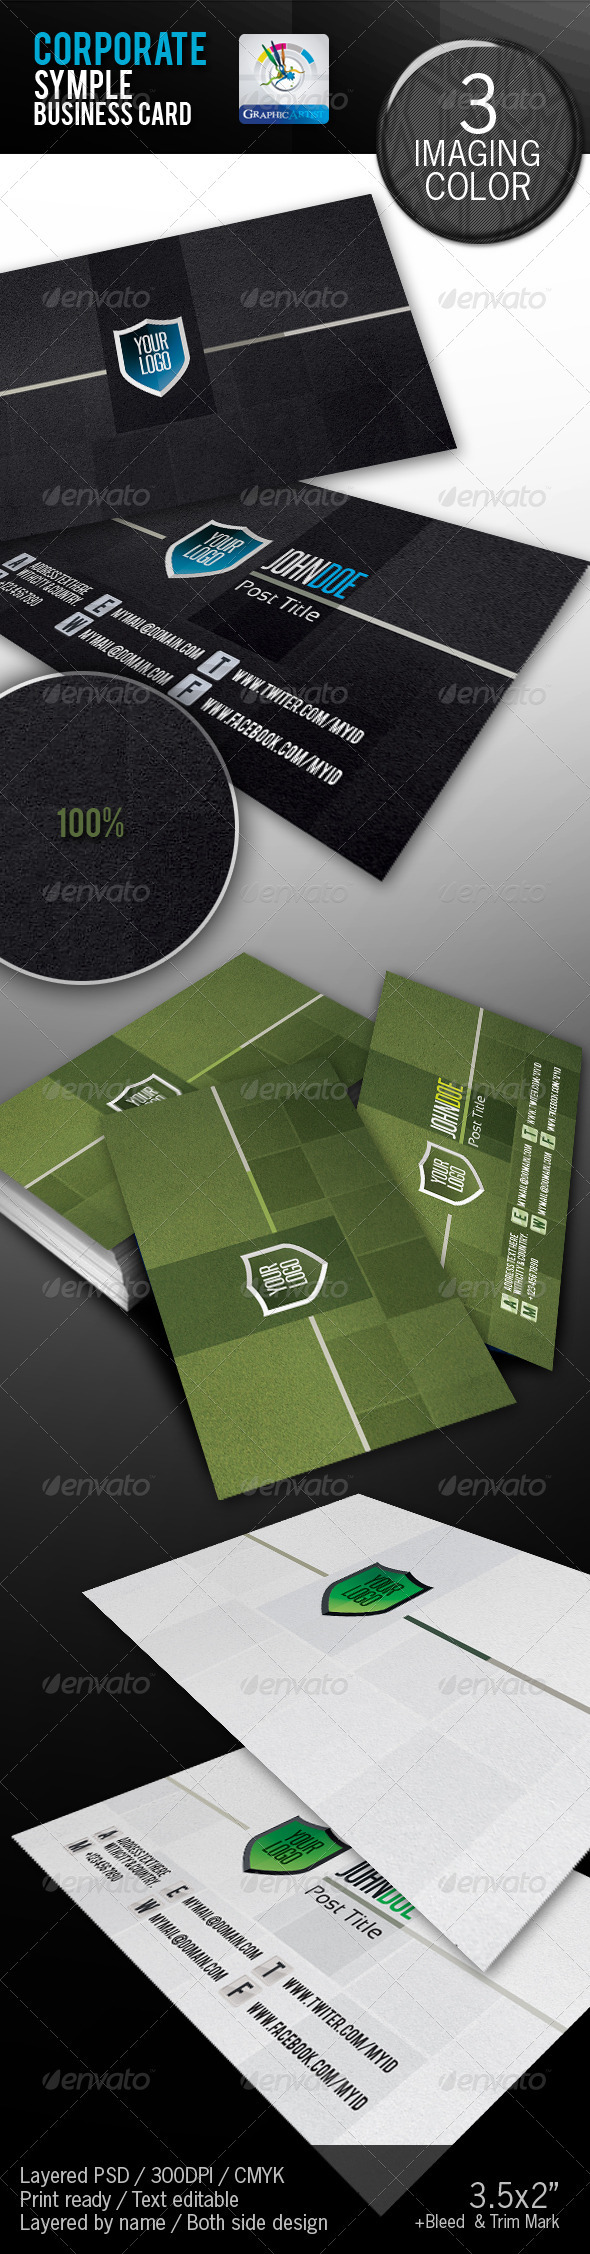 GraphicRiver Corporate Creative Business Card 1686924